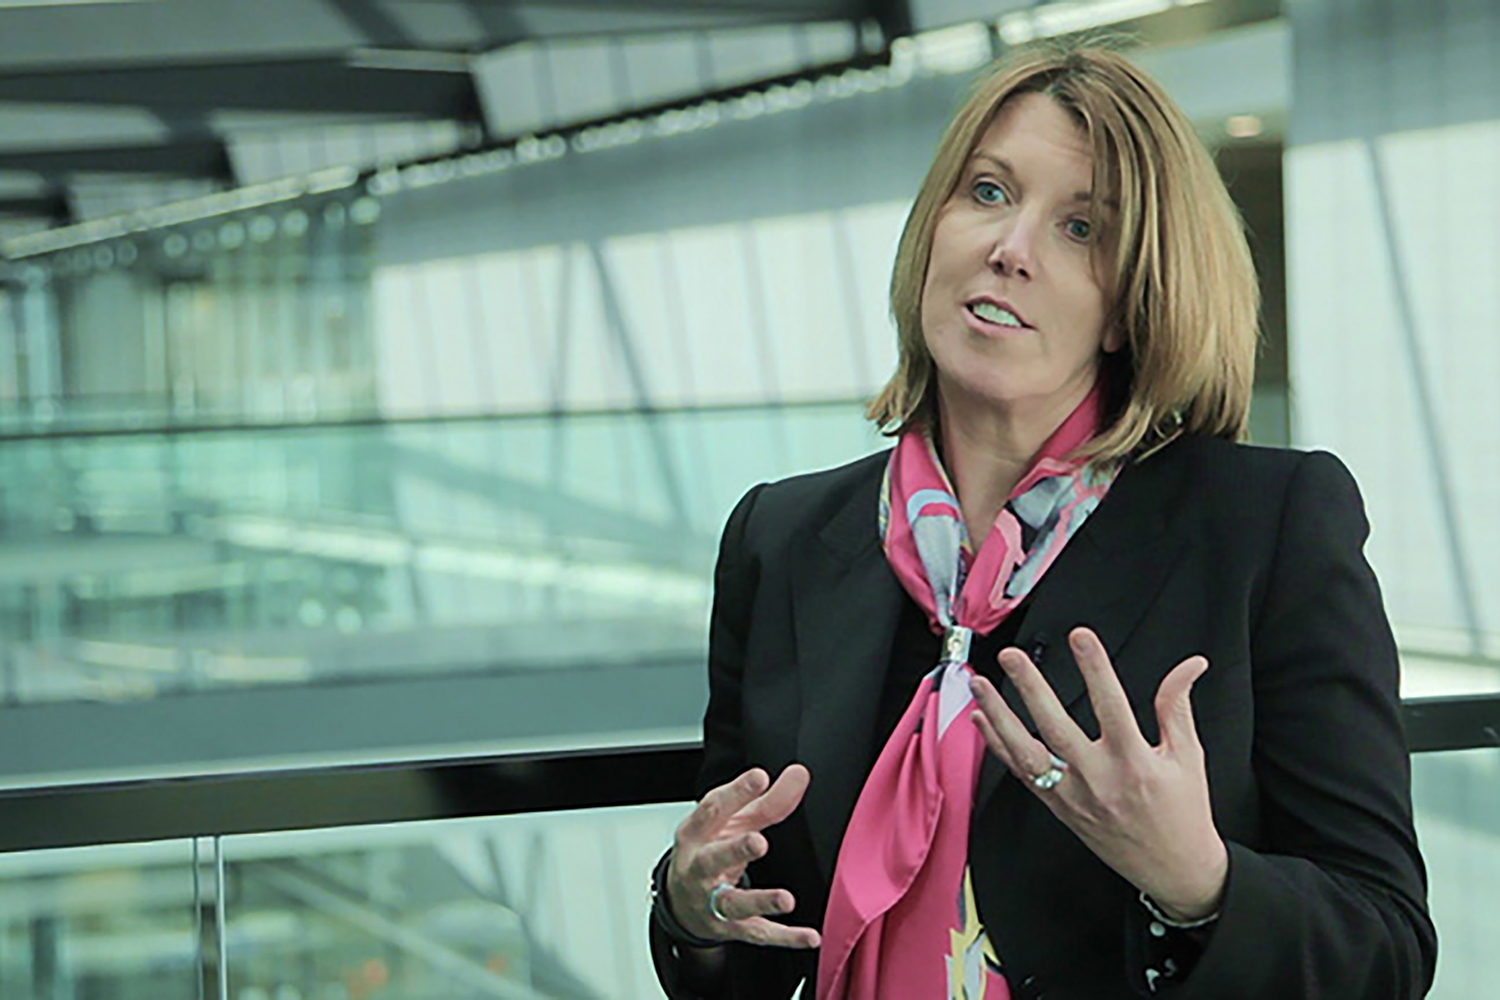 Alison Kay, EY Global Vice Chair for Industry